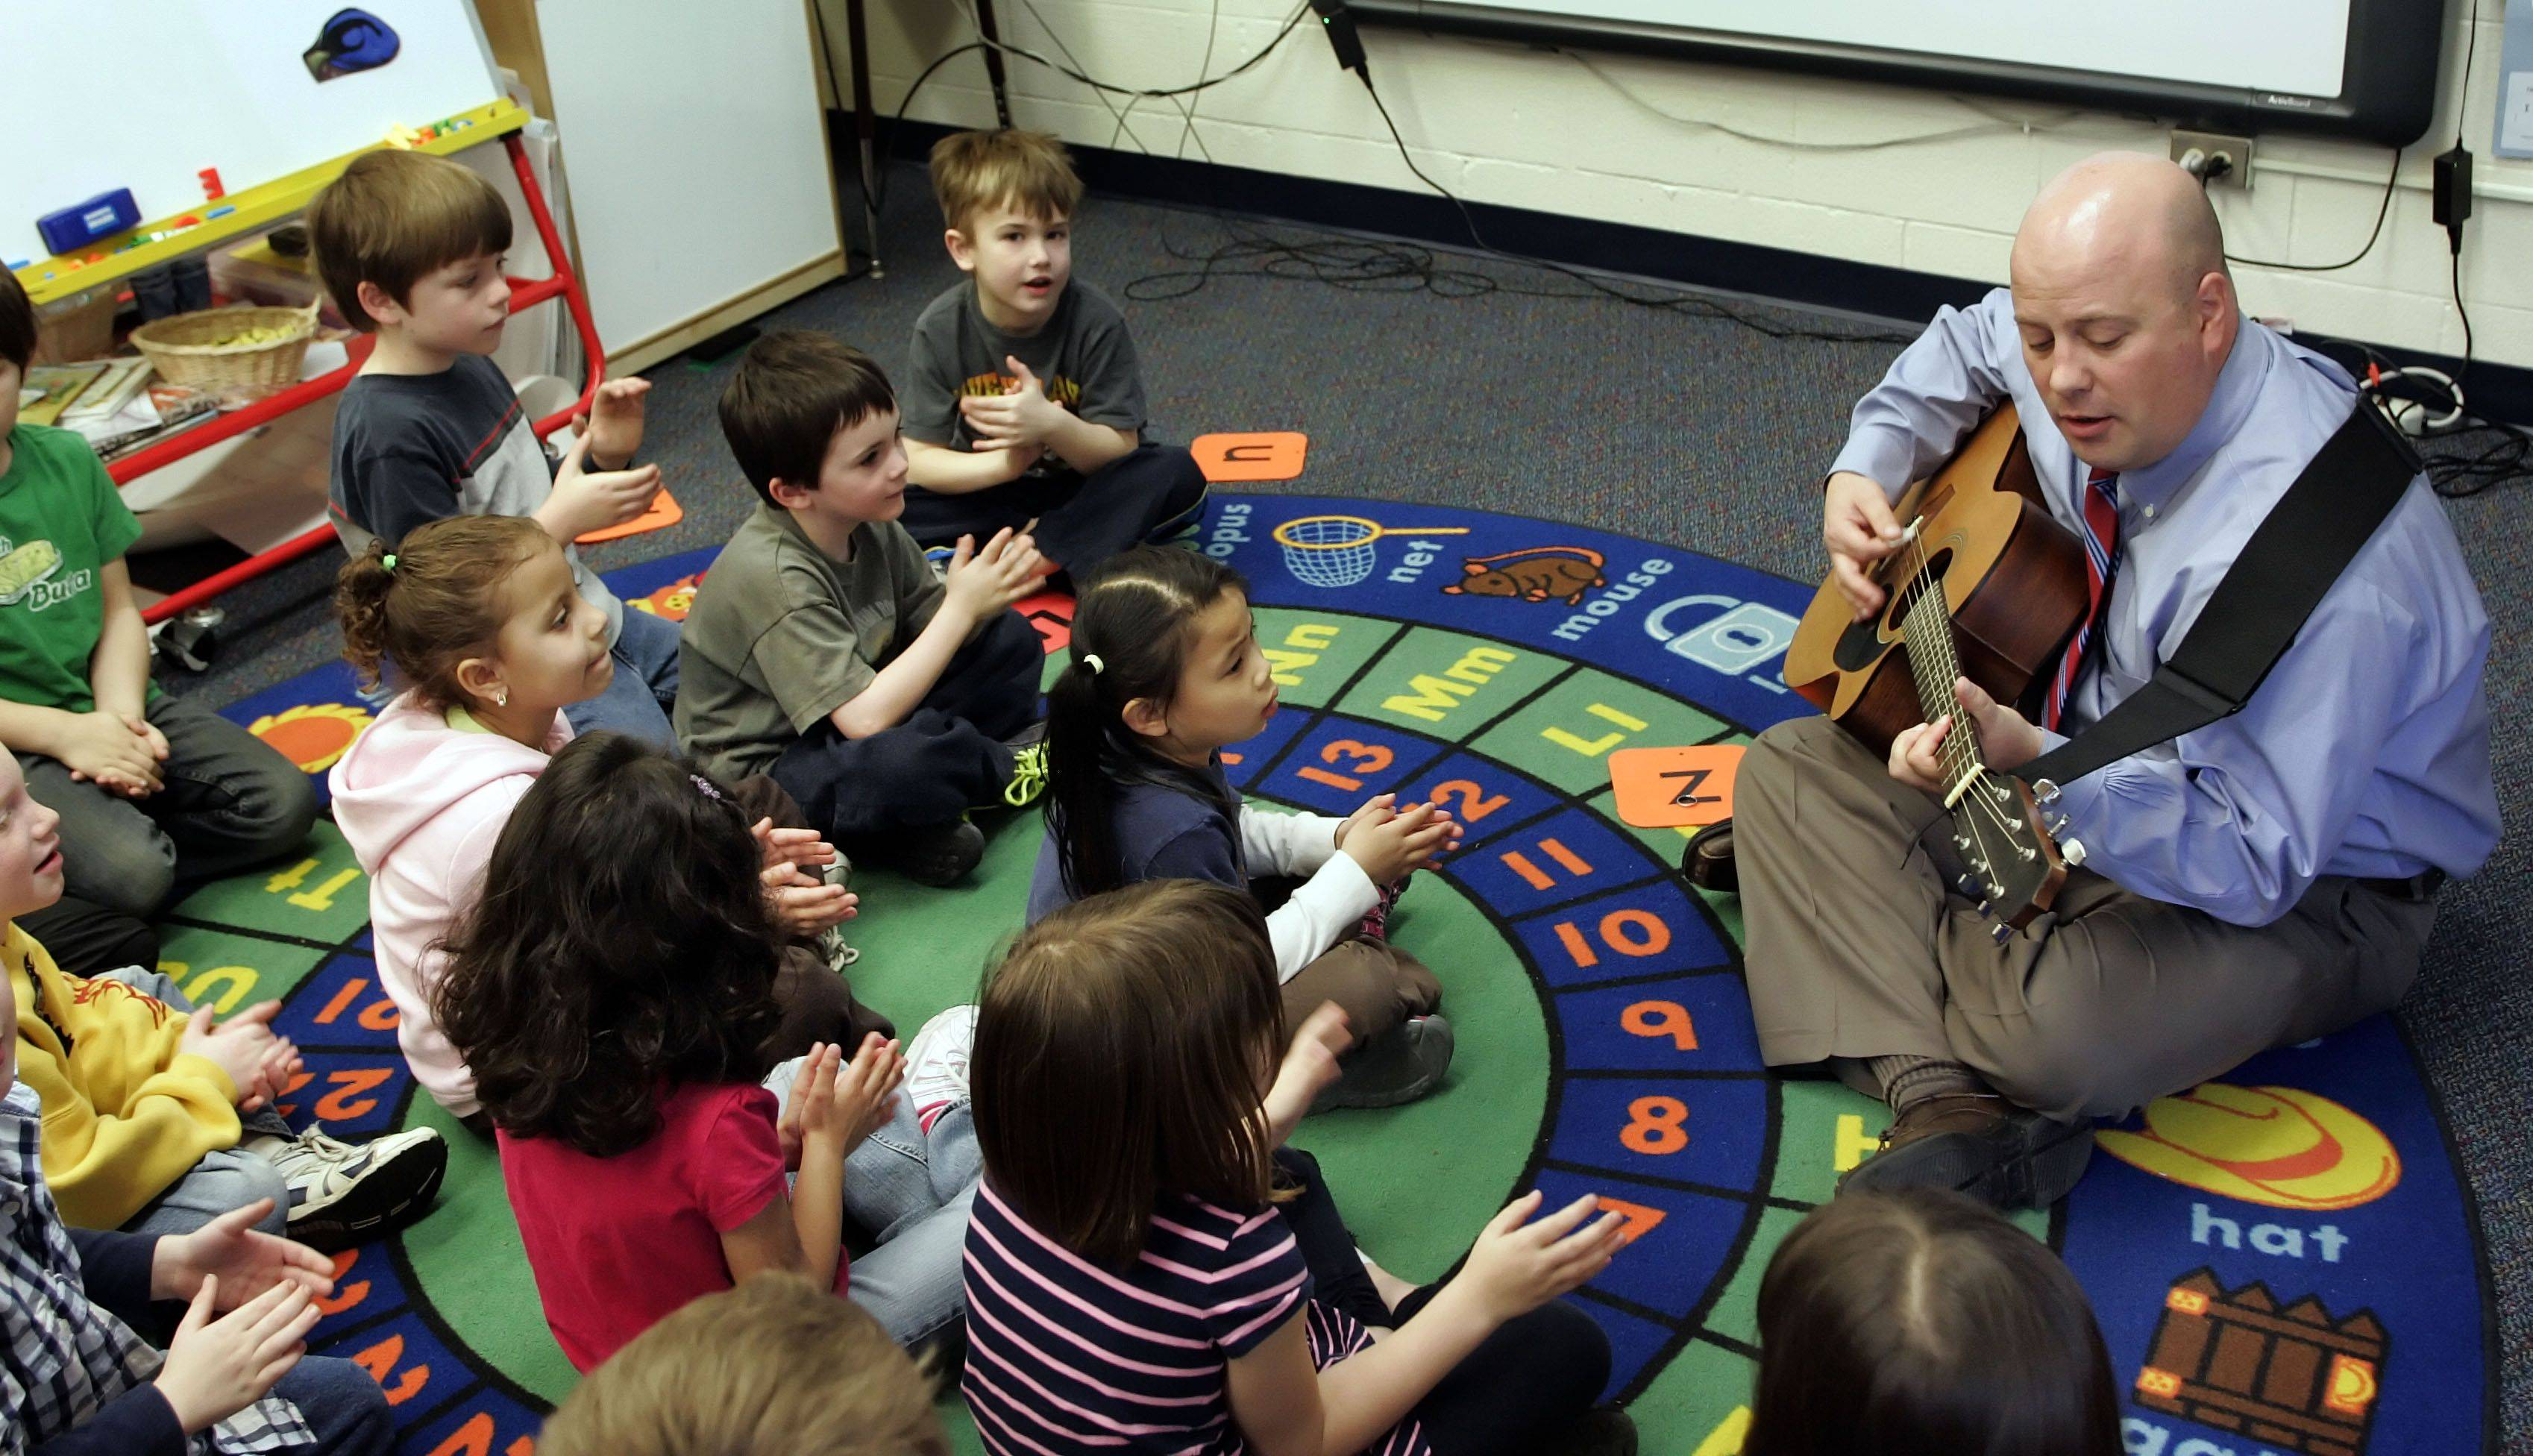 Adler Park School Principal Jon Bogie entertains the kindergarten class with his guitar in Libertyville. Bogie brings his love of music to the role of school principal.